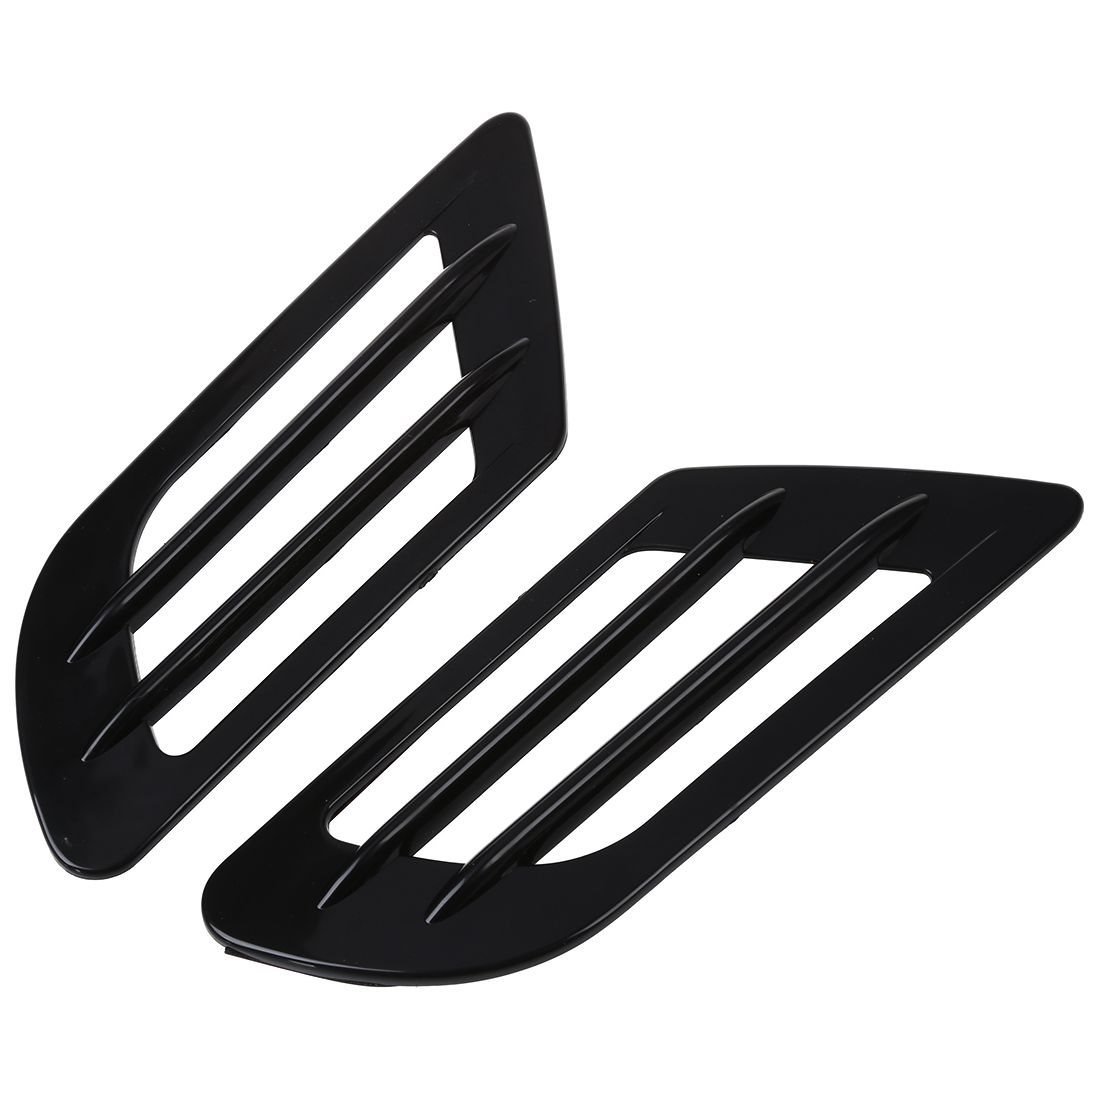 Car Side Air Flow Vent Hole Cover Fender Intake Grille Duct Decoration Sticker Black 2017 chromed abs plastic car side air vent fender cover sticker for toyota camry solara celica celsior century corolla fielder